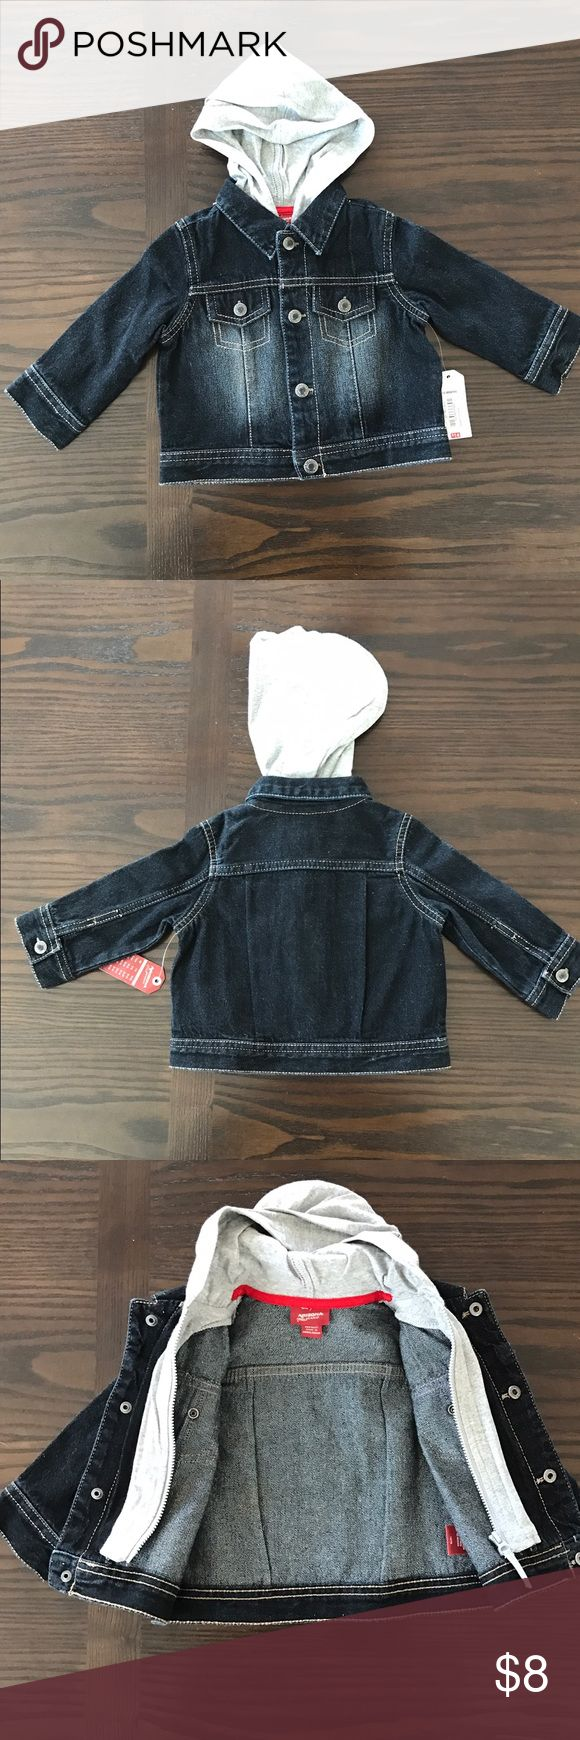 NWT baby jean jacket Adorable hooded jean jacket. Gender neutral! Inside zipper and putter buttons. Arizona Jean Company Jackets & Coats Jean Jackets